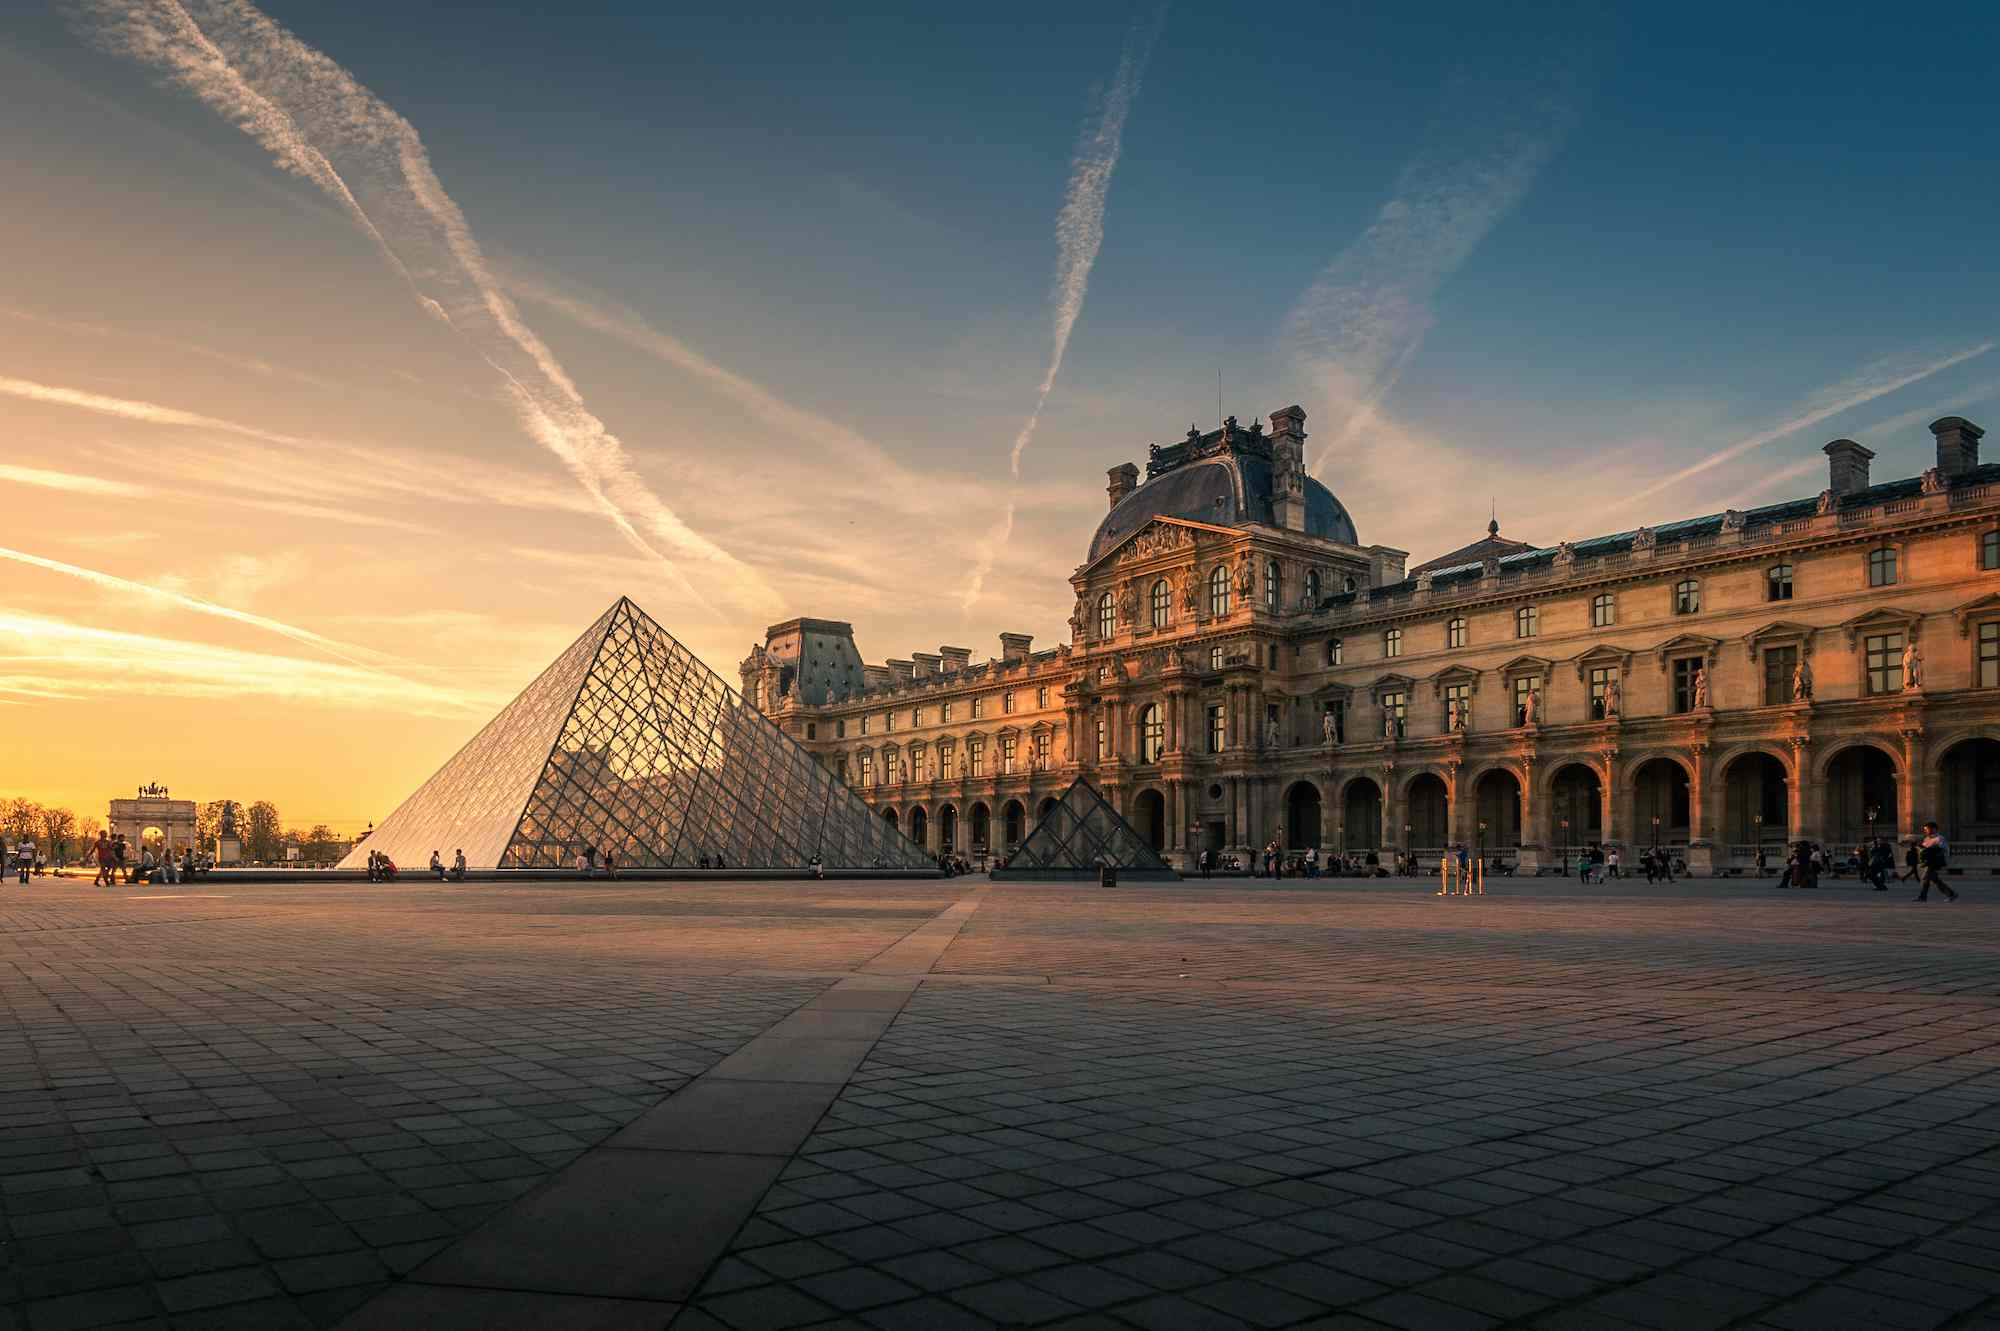 Sunset view of the Louvre and pyramid